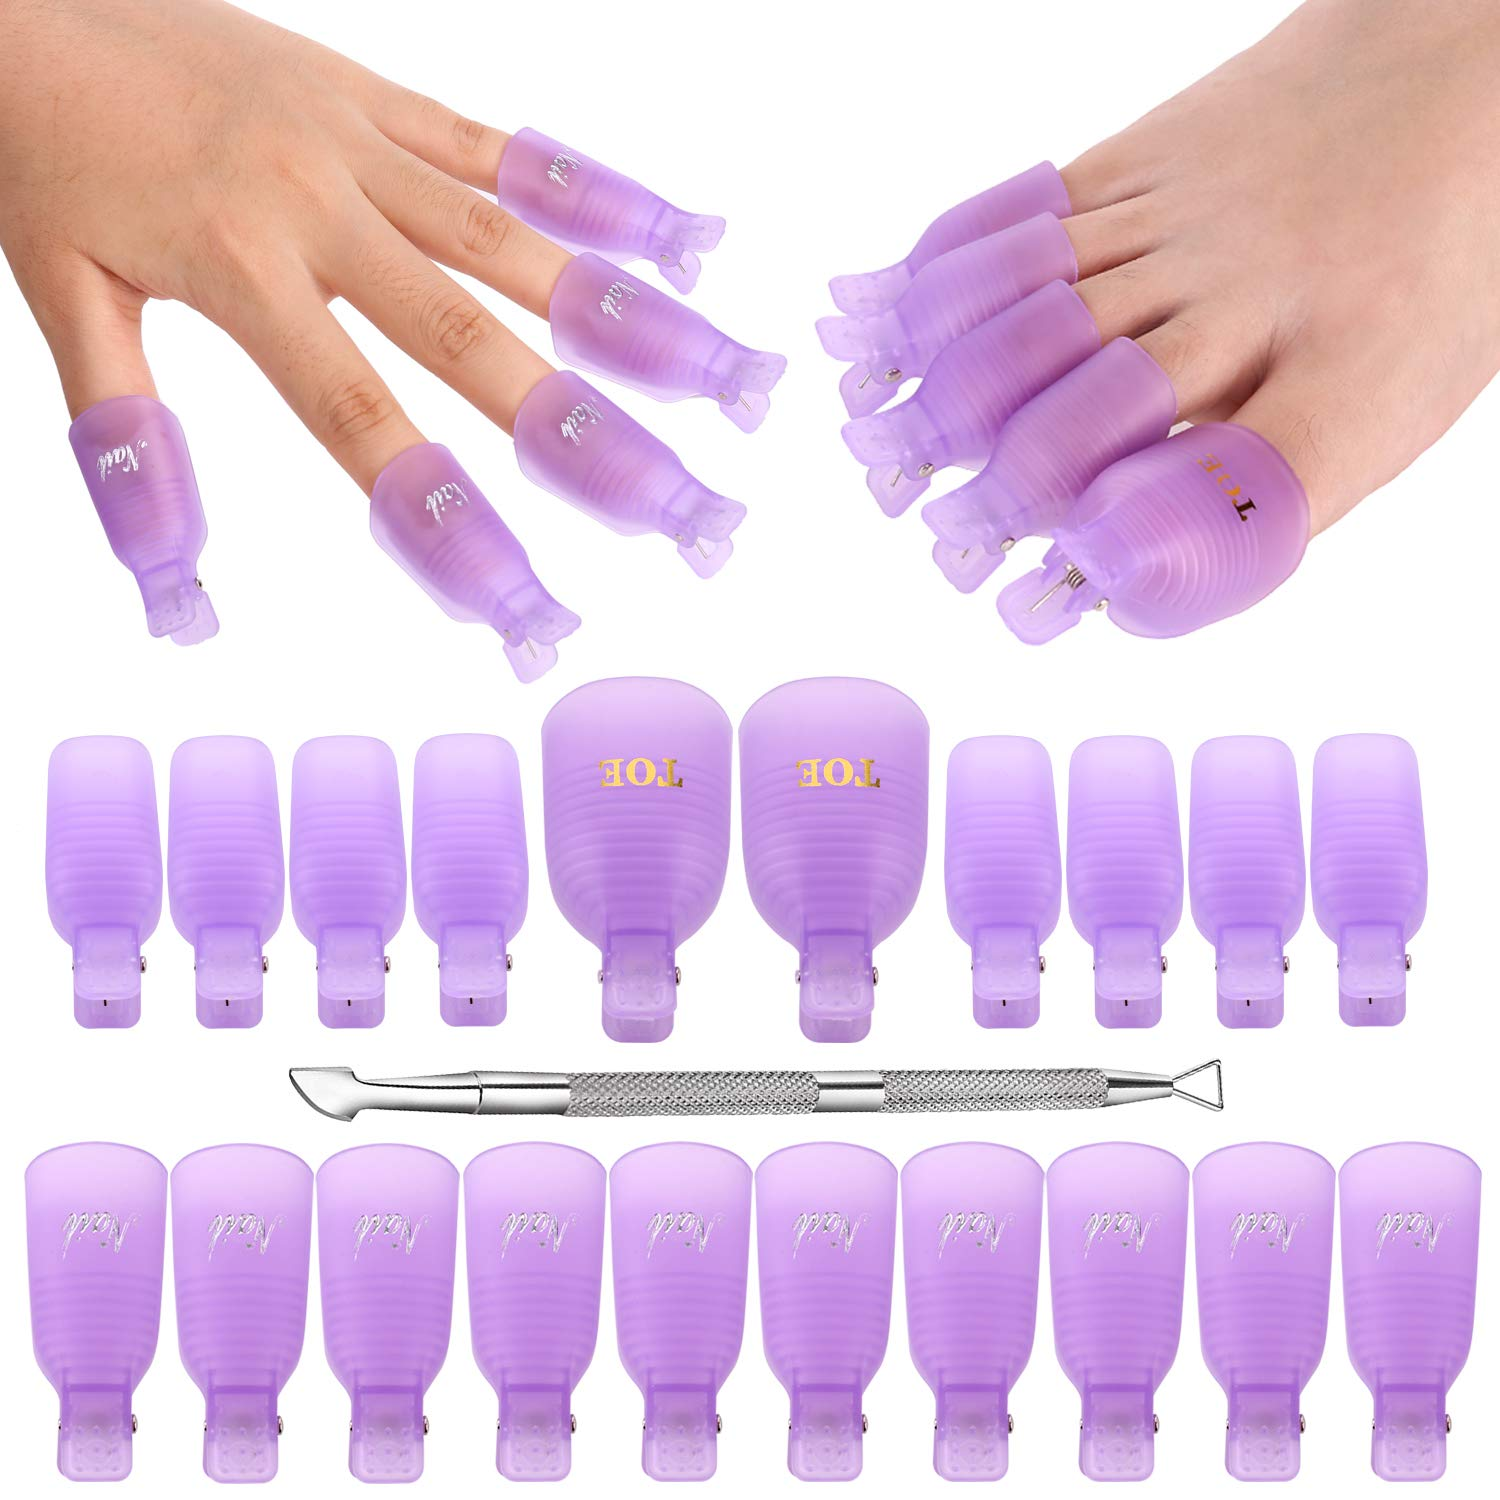 Gel Nail Polish Remover, Hekoy Acrylic Nail Clips Wraps Caps Cuticle Pusher Set for Women Fingernail Toenail 21pcs